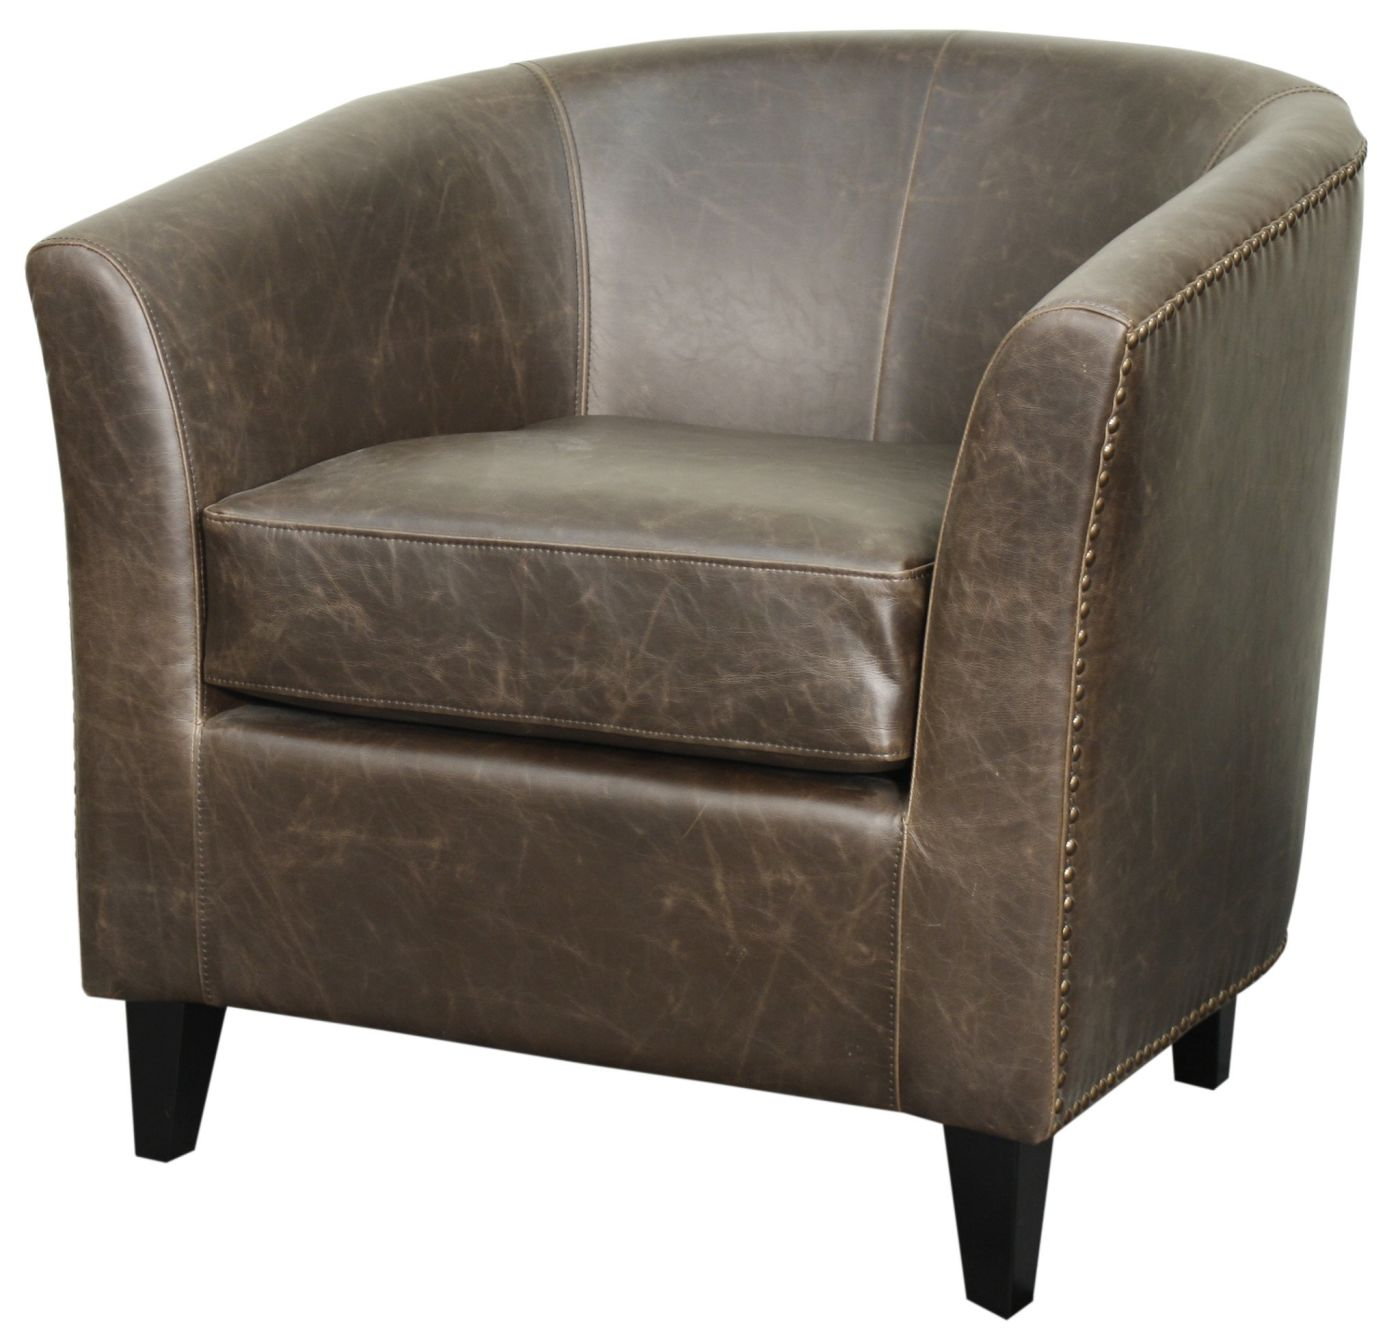 Dark Brown Accent Chairs.Buy New Pacific Direct 353021b V01 B Orson Bonded Leather Tub Chair Black Legs Vintage Dark Brown At Contemporary Furniture Warehouse